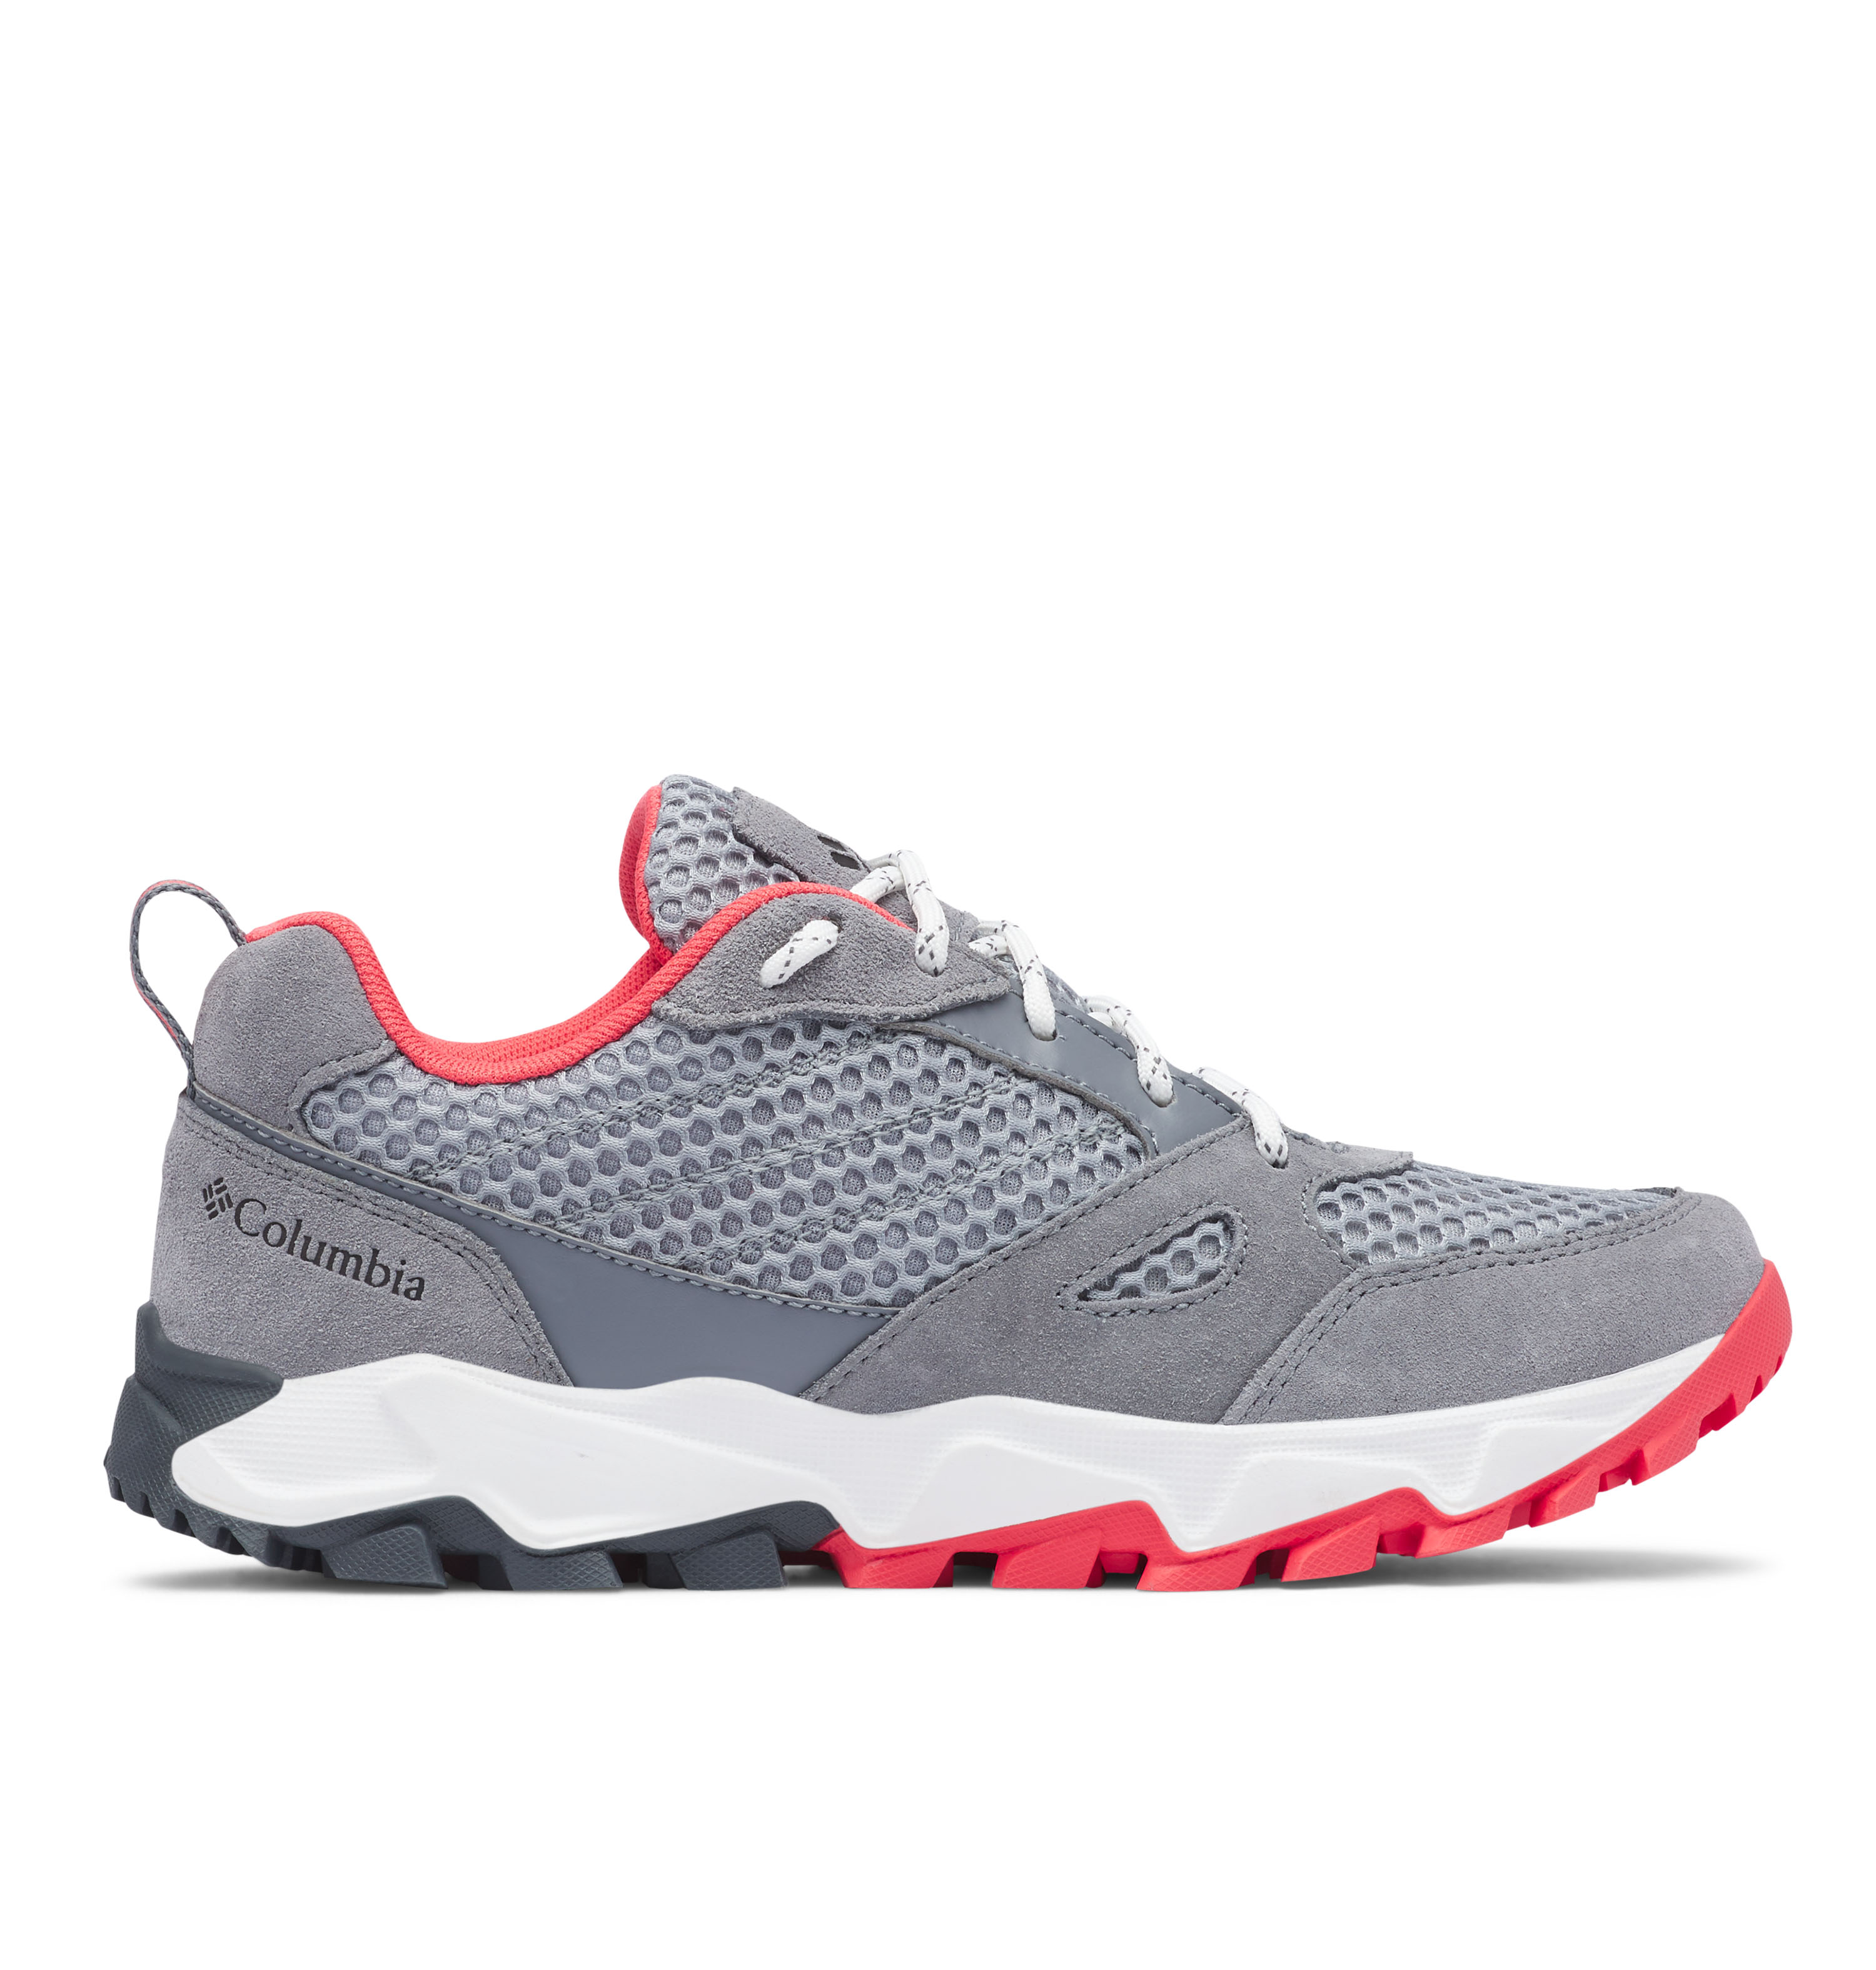 Comprar Columbia Ivo Trail Breeze gray / Techlite / Omni-Grip shoes /